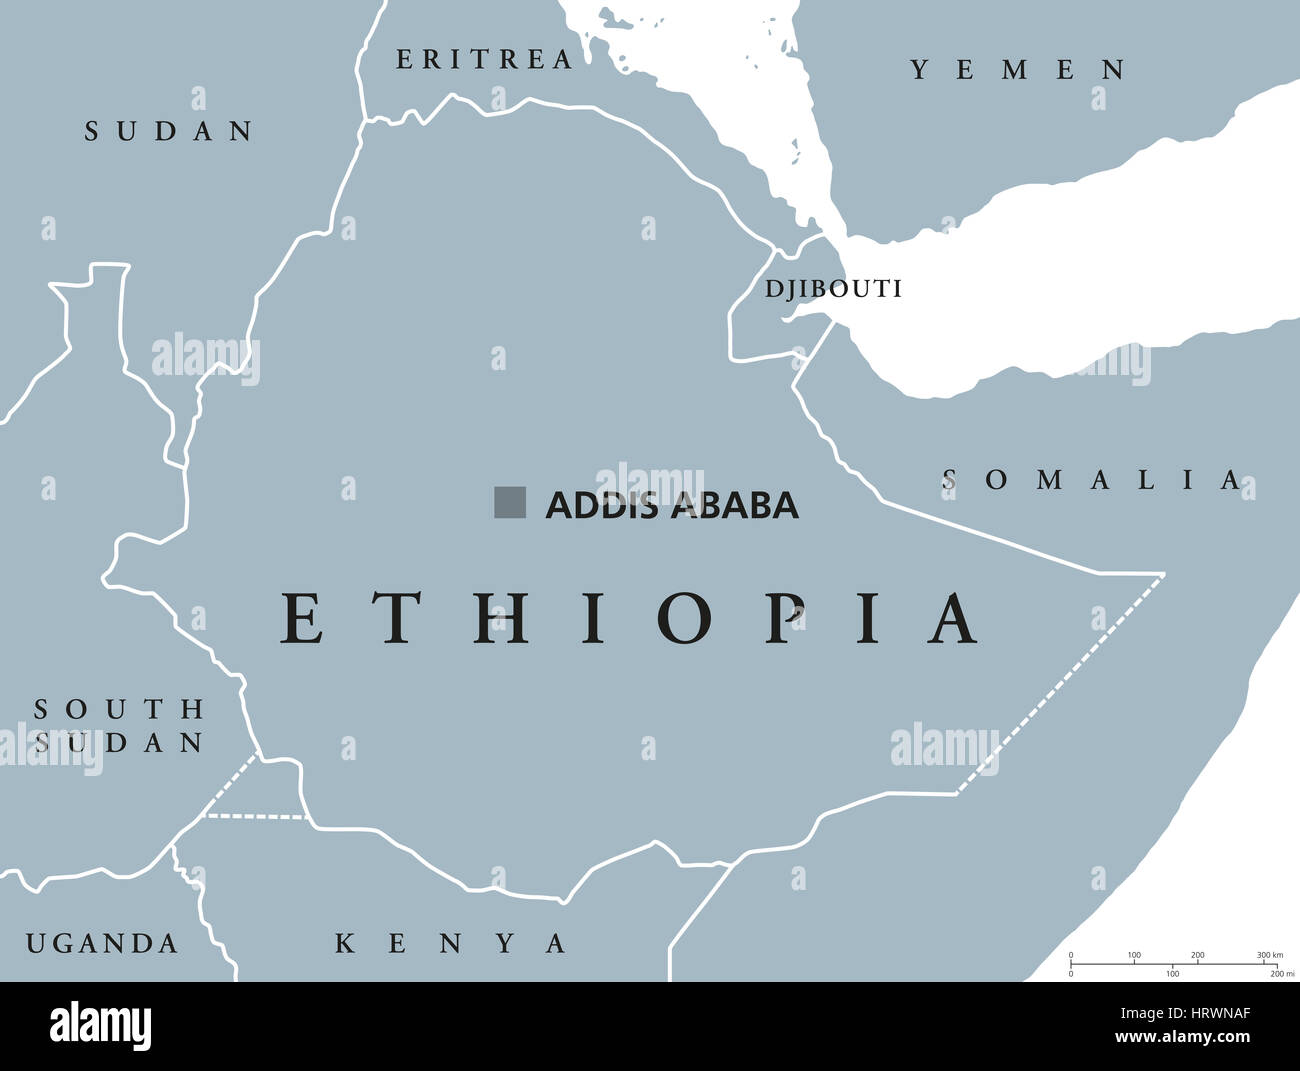 Ethiopia Political Map With Capital Addis Ababa And Borders - Republic of djibouti map